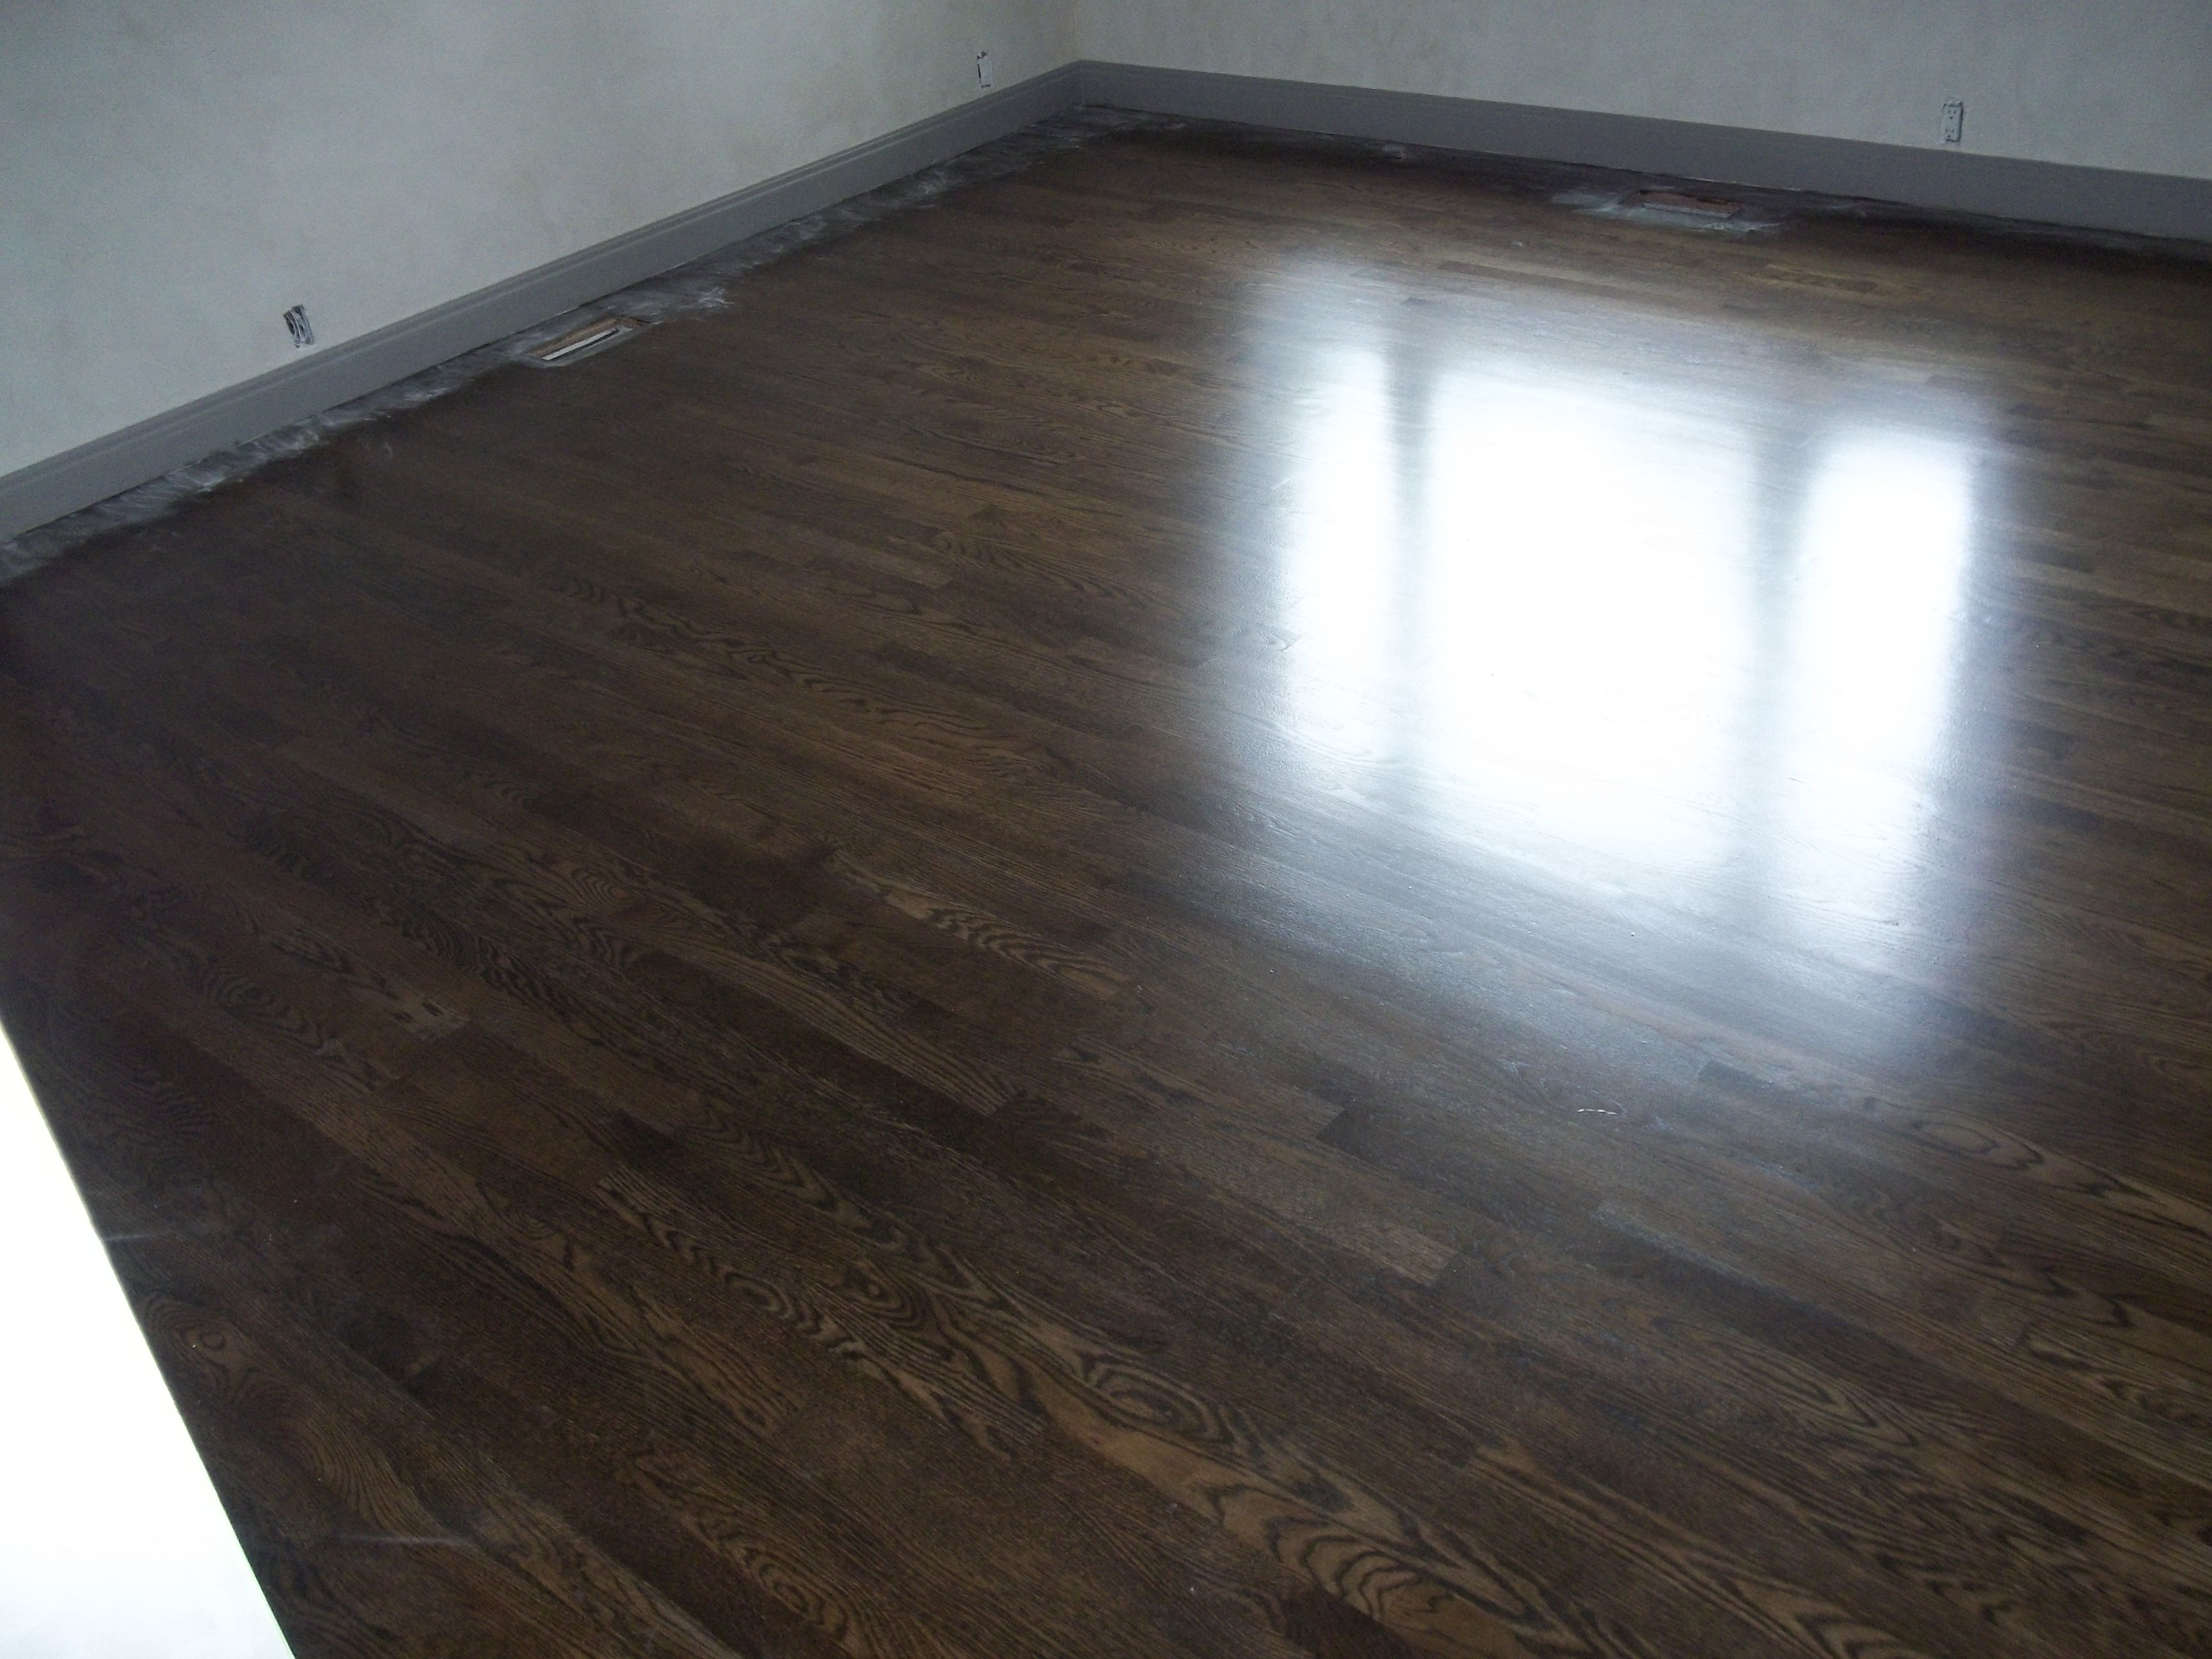 Red Oak Wood Floor Refinished With Duraseal Ebony Stain Modern Tech Wood Floors Red Oak Wood Floors Staining Wood Floors Red Oak Wood